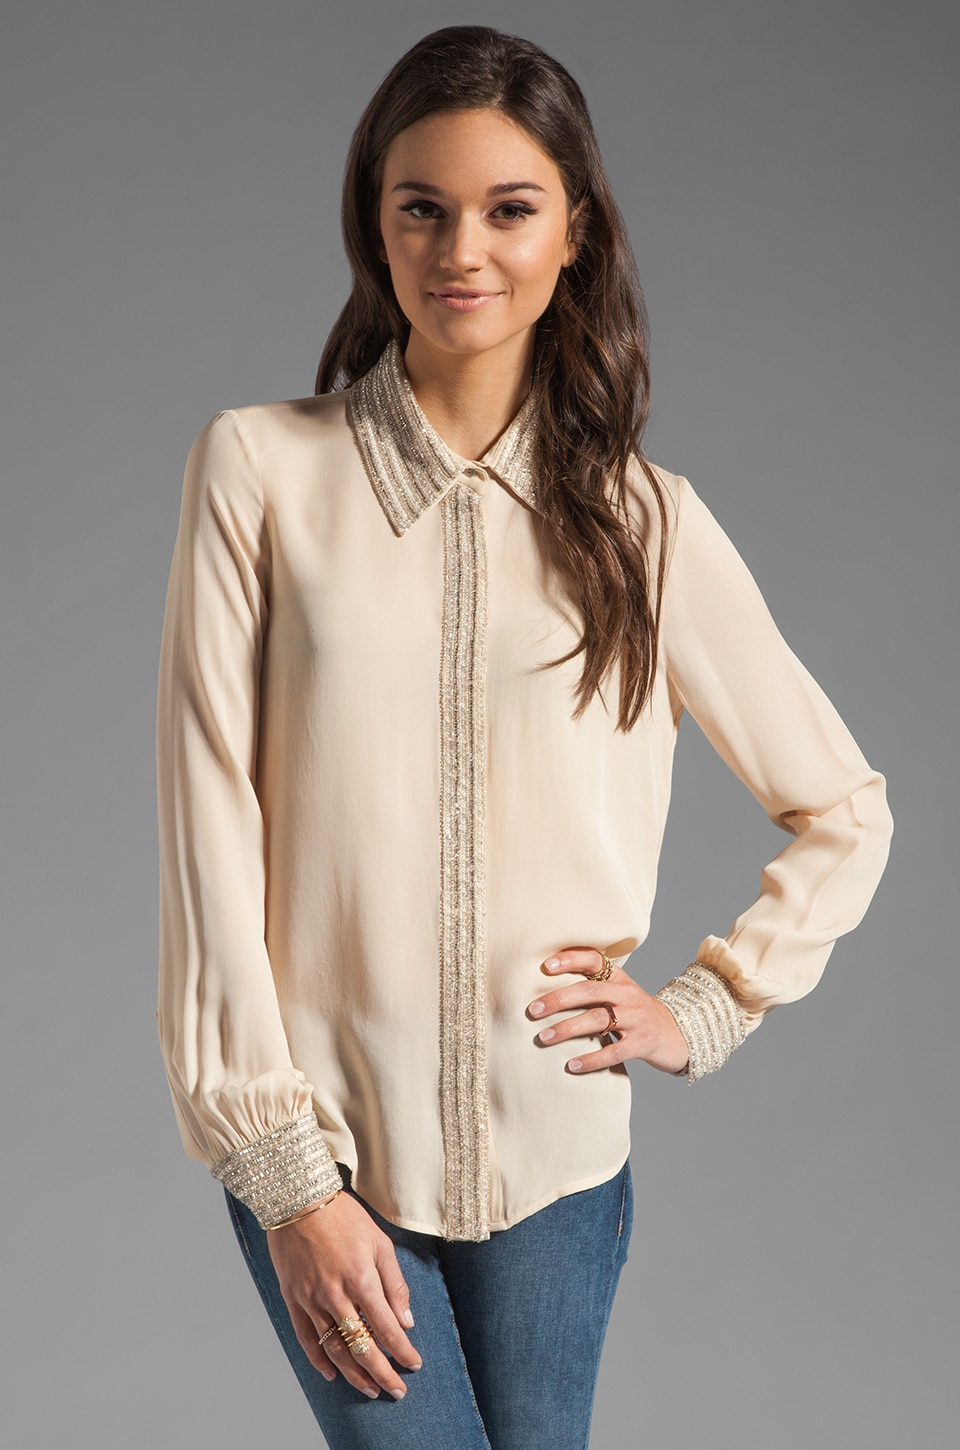 Haute Hippie Embellished Collar Blouse in Buff